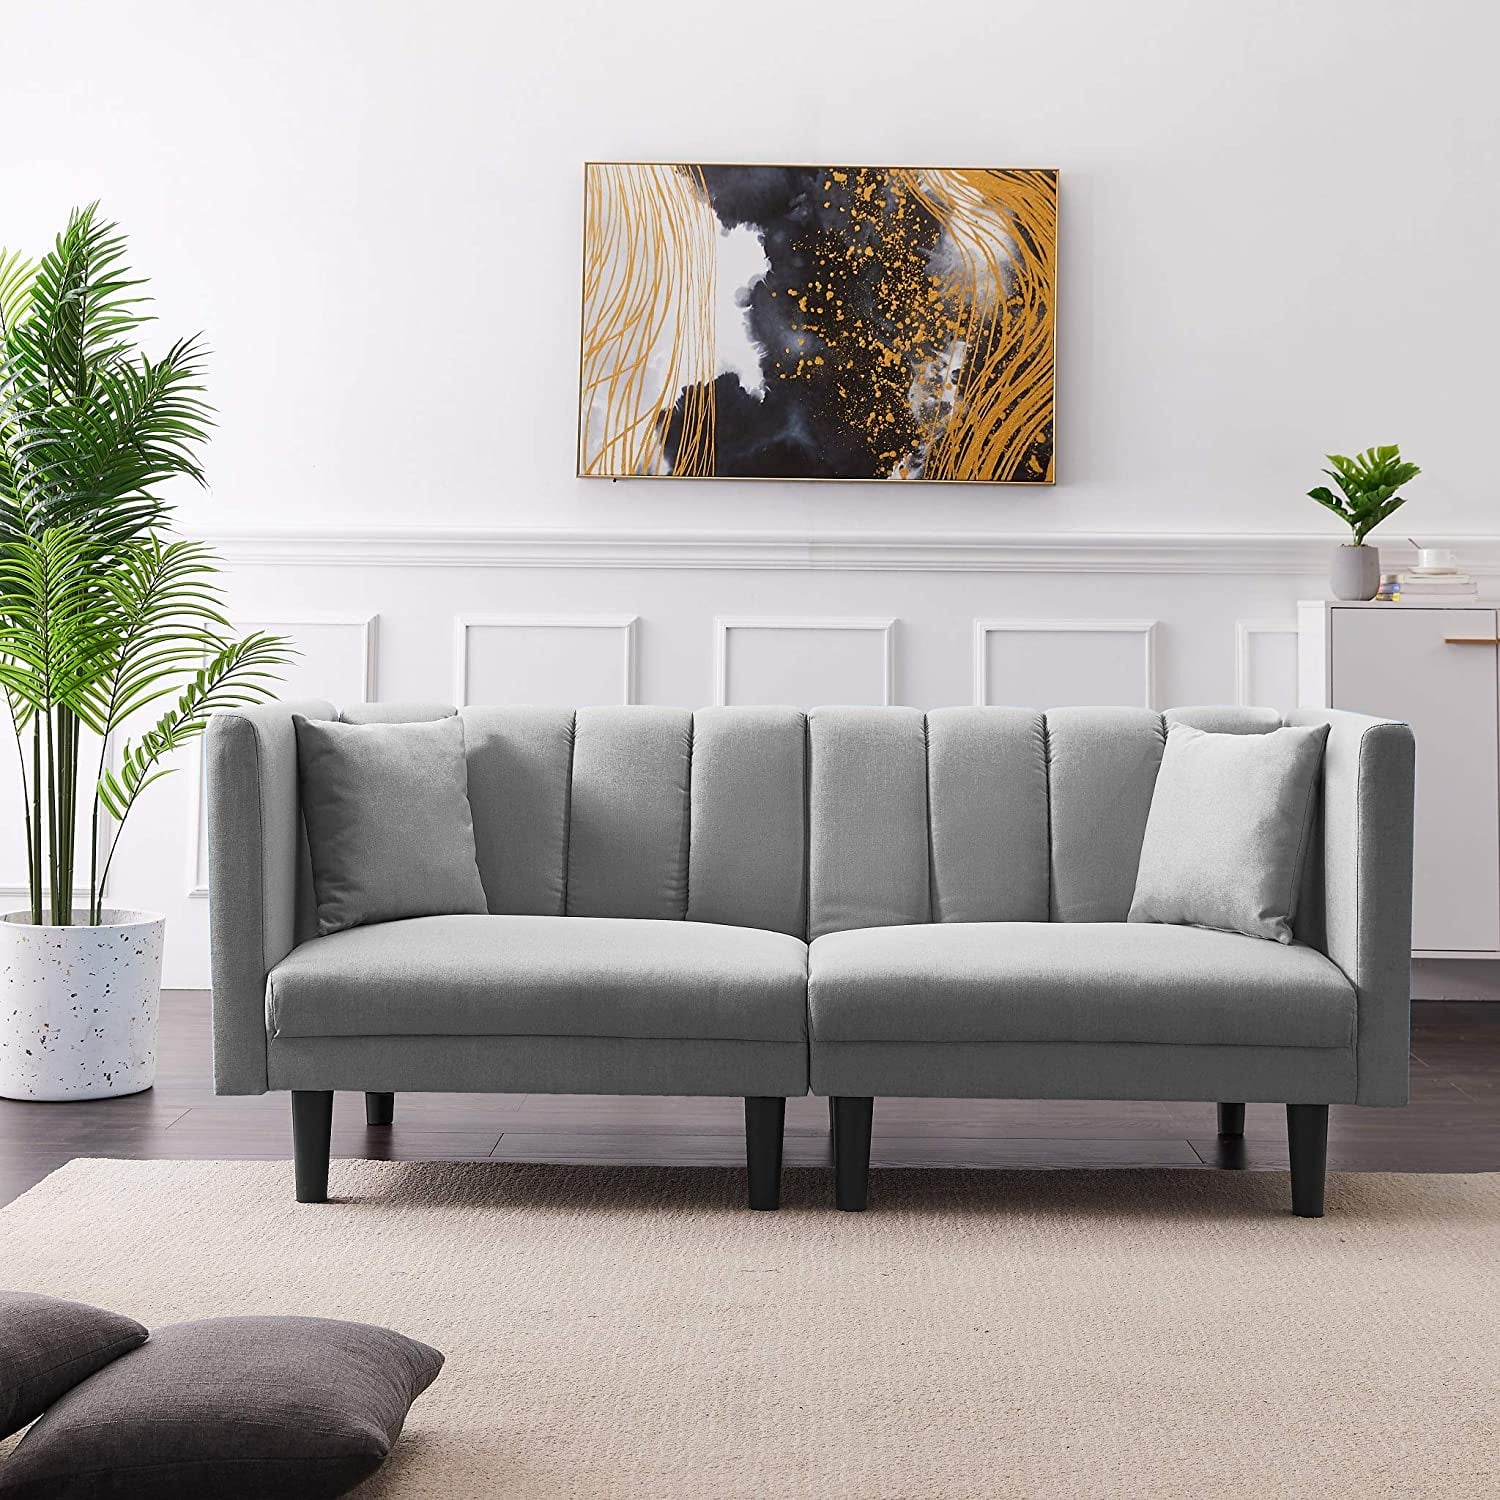 Convertible Futon Sofa Bed 40 Space Saving Furniture Pieces That Are Stylish Roomy And All From Amazon Popsugar Home Photo 4